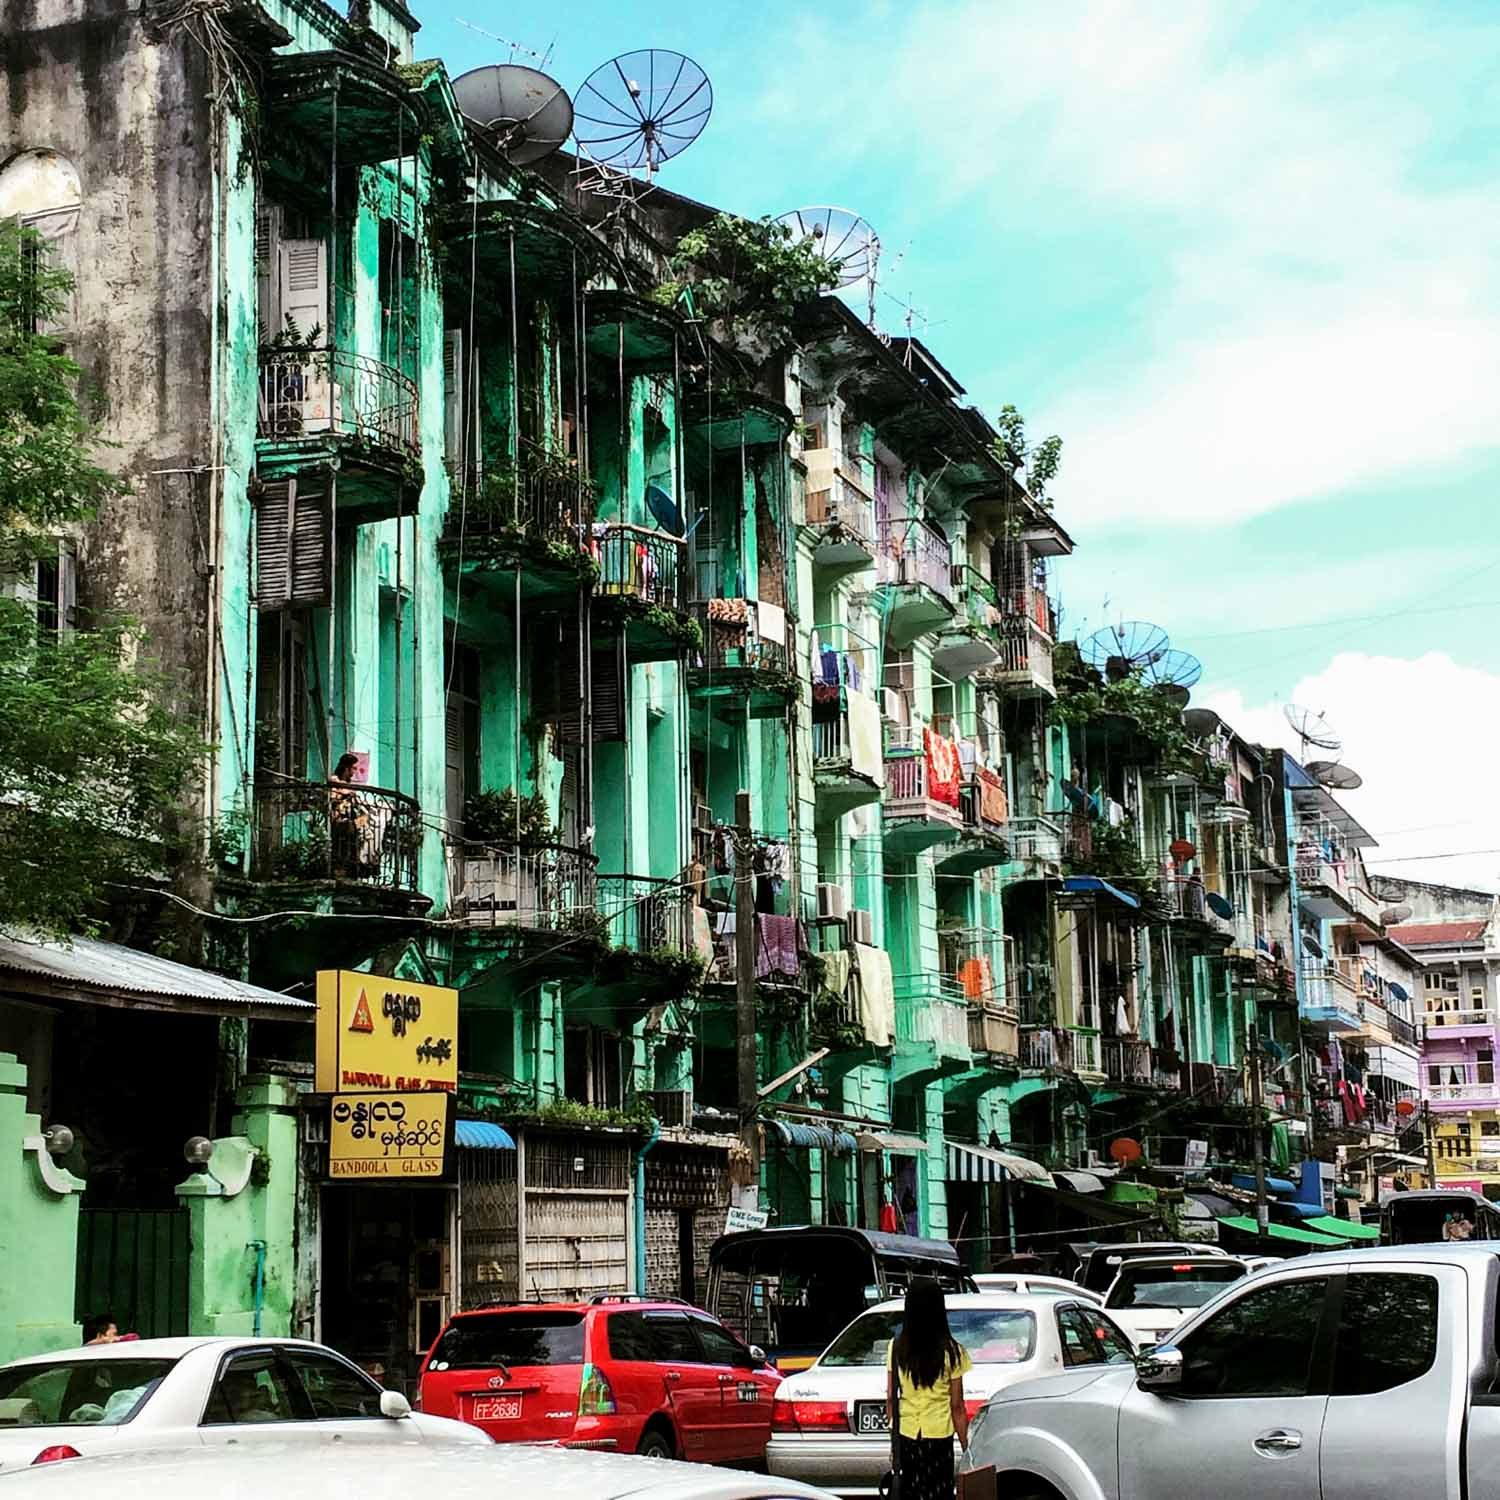 Yangon's colonial facades mix with gridlock